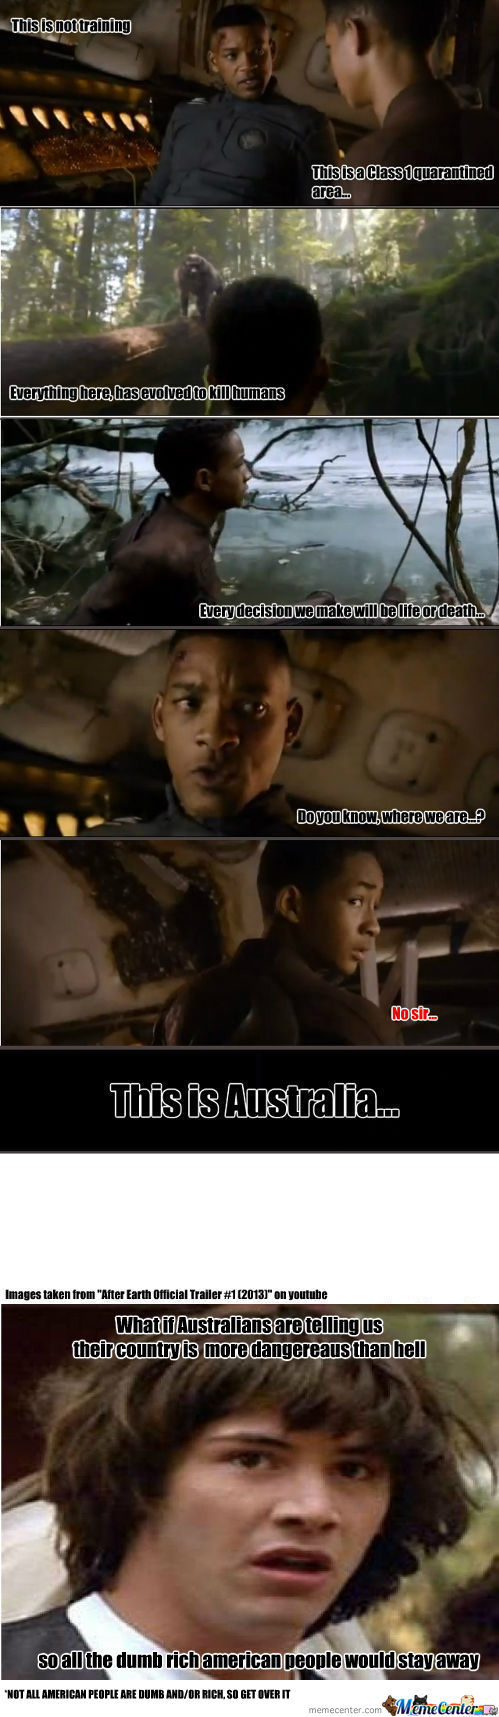 [RMX] Just Will Smith In Australia.